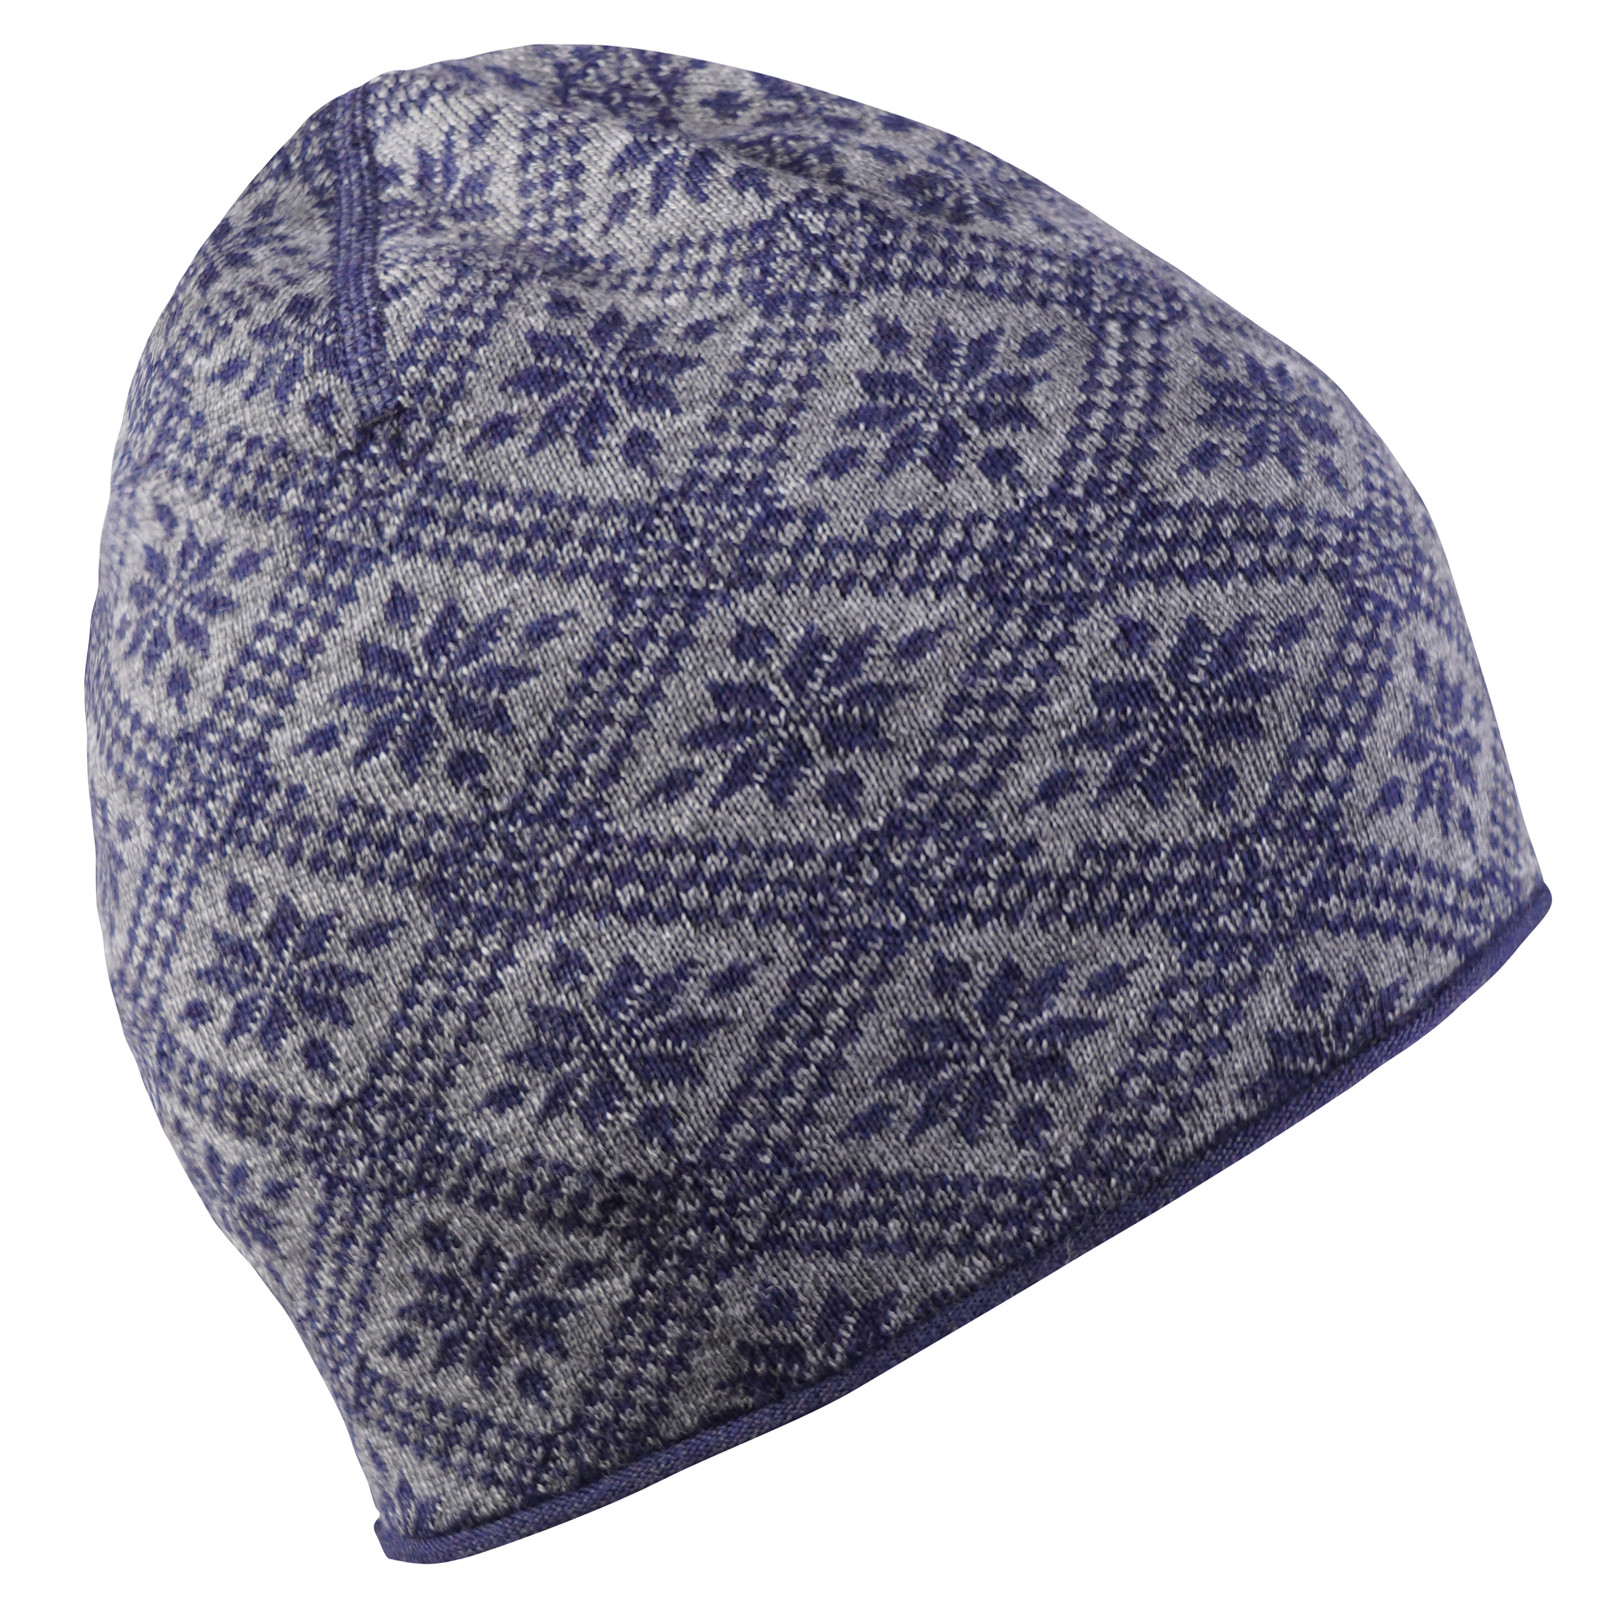 Dale of Norway Christiania Hat - Electric Storm/Smoke, 48701-H